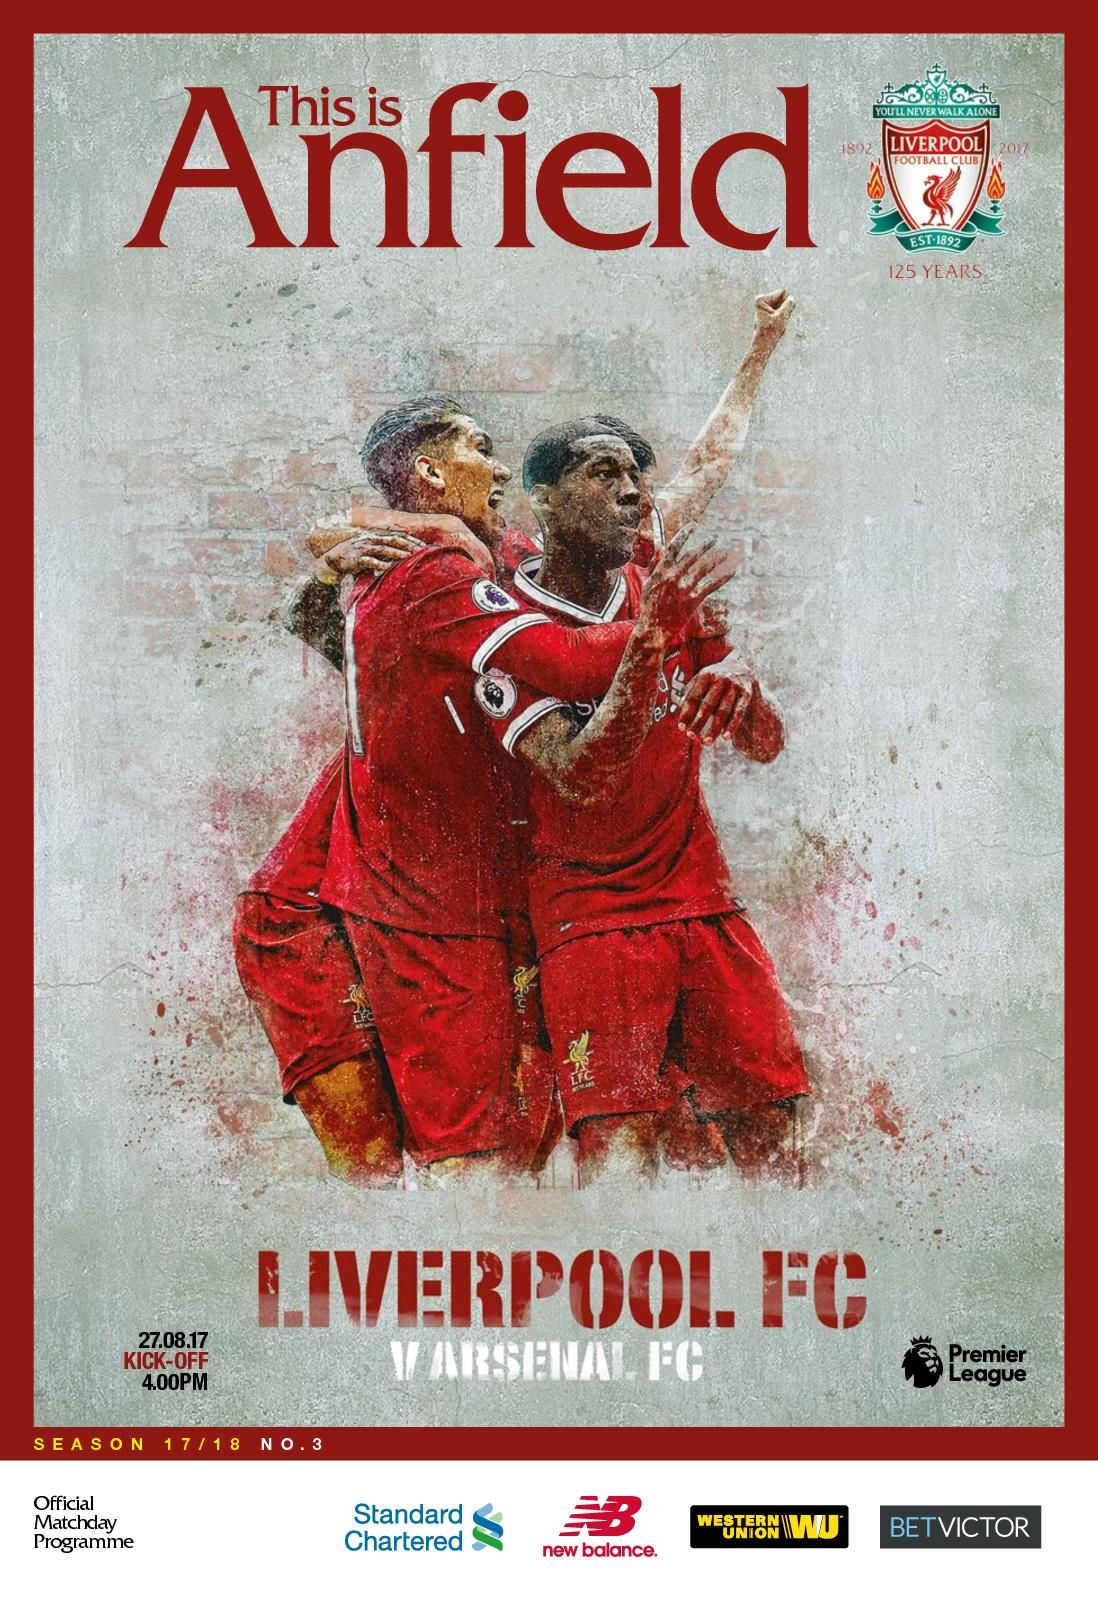 Official matchday programme for Liverpool v Arsenal